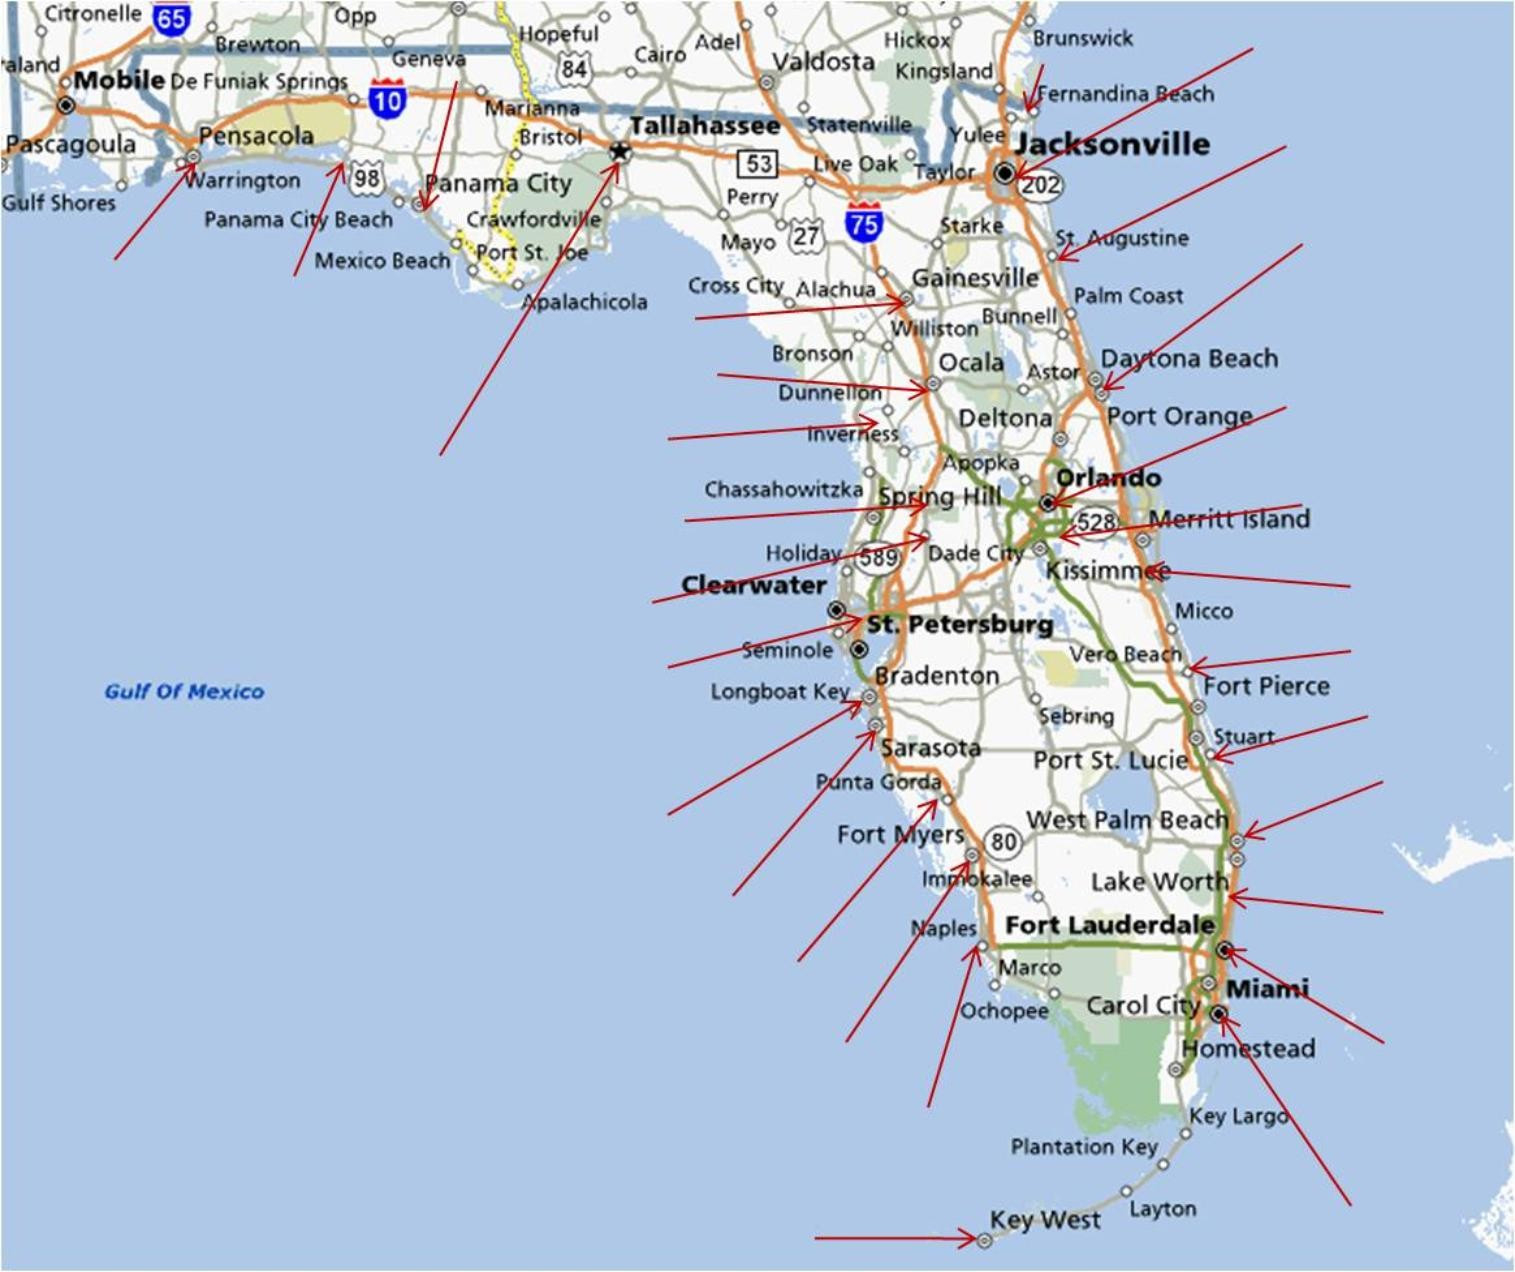 Mexico Beach Florida Map From Windsurfaddicts 9 - Judecelestin2010 - Mexico Florida Map